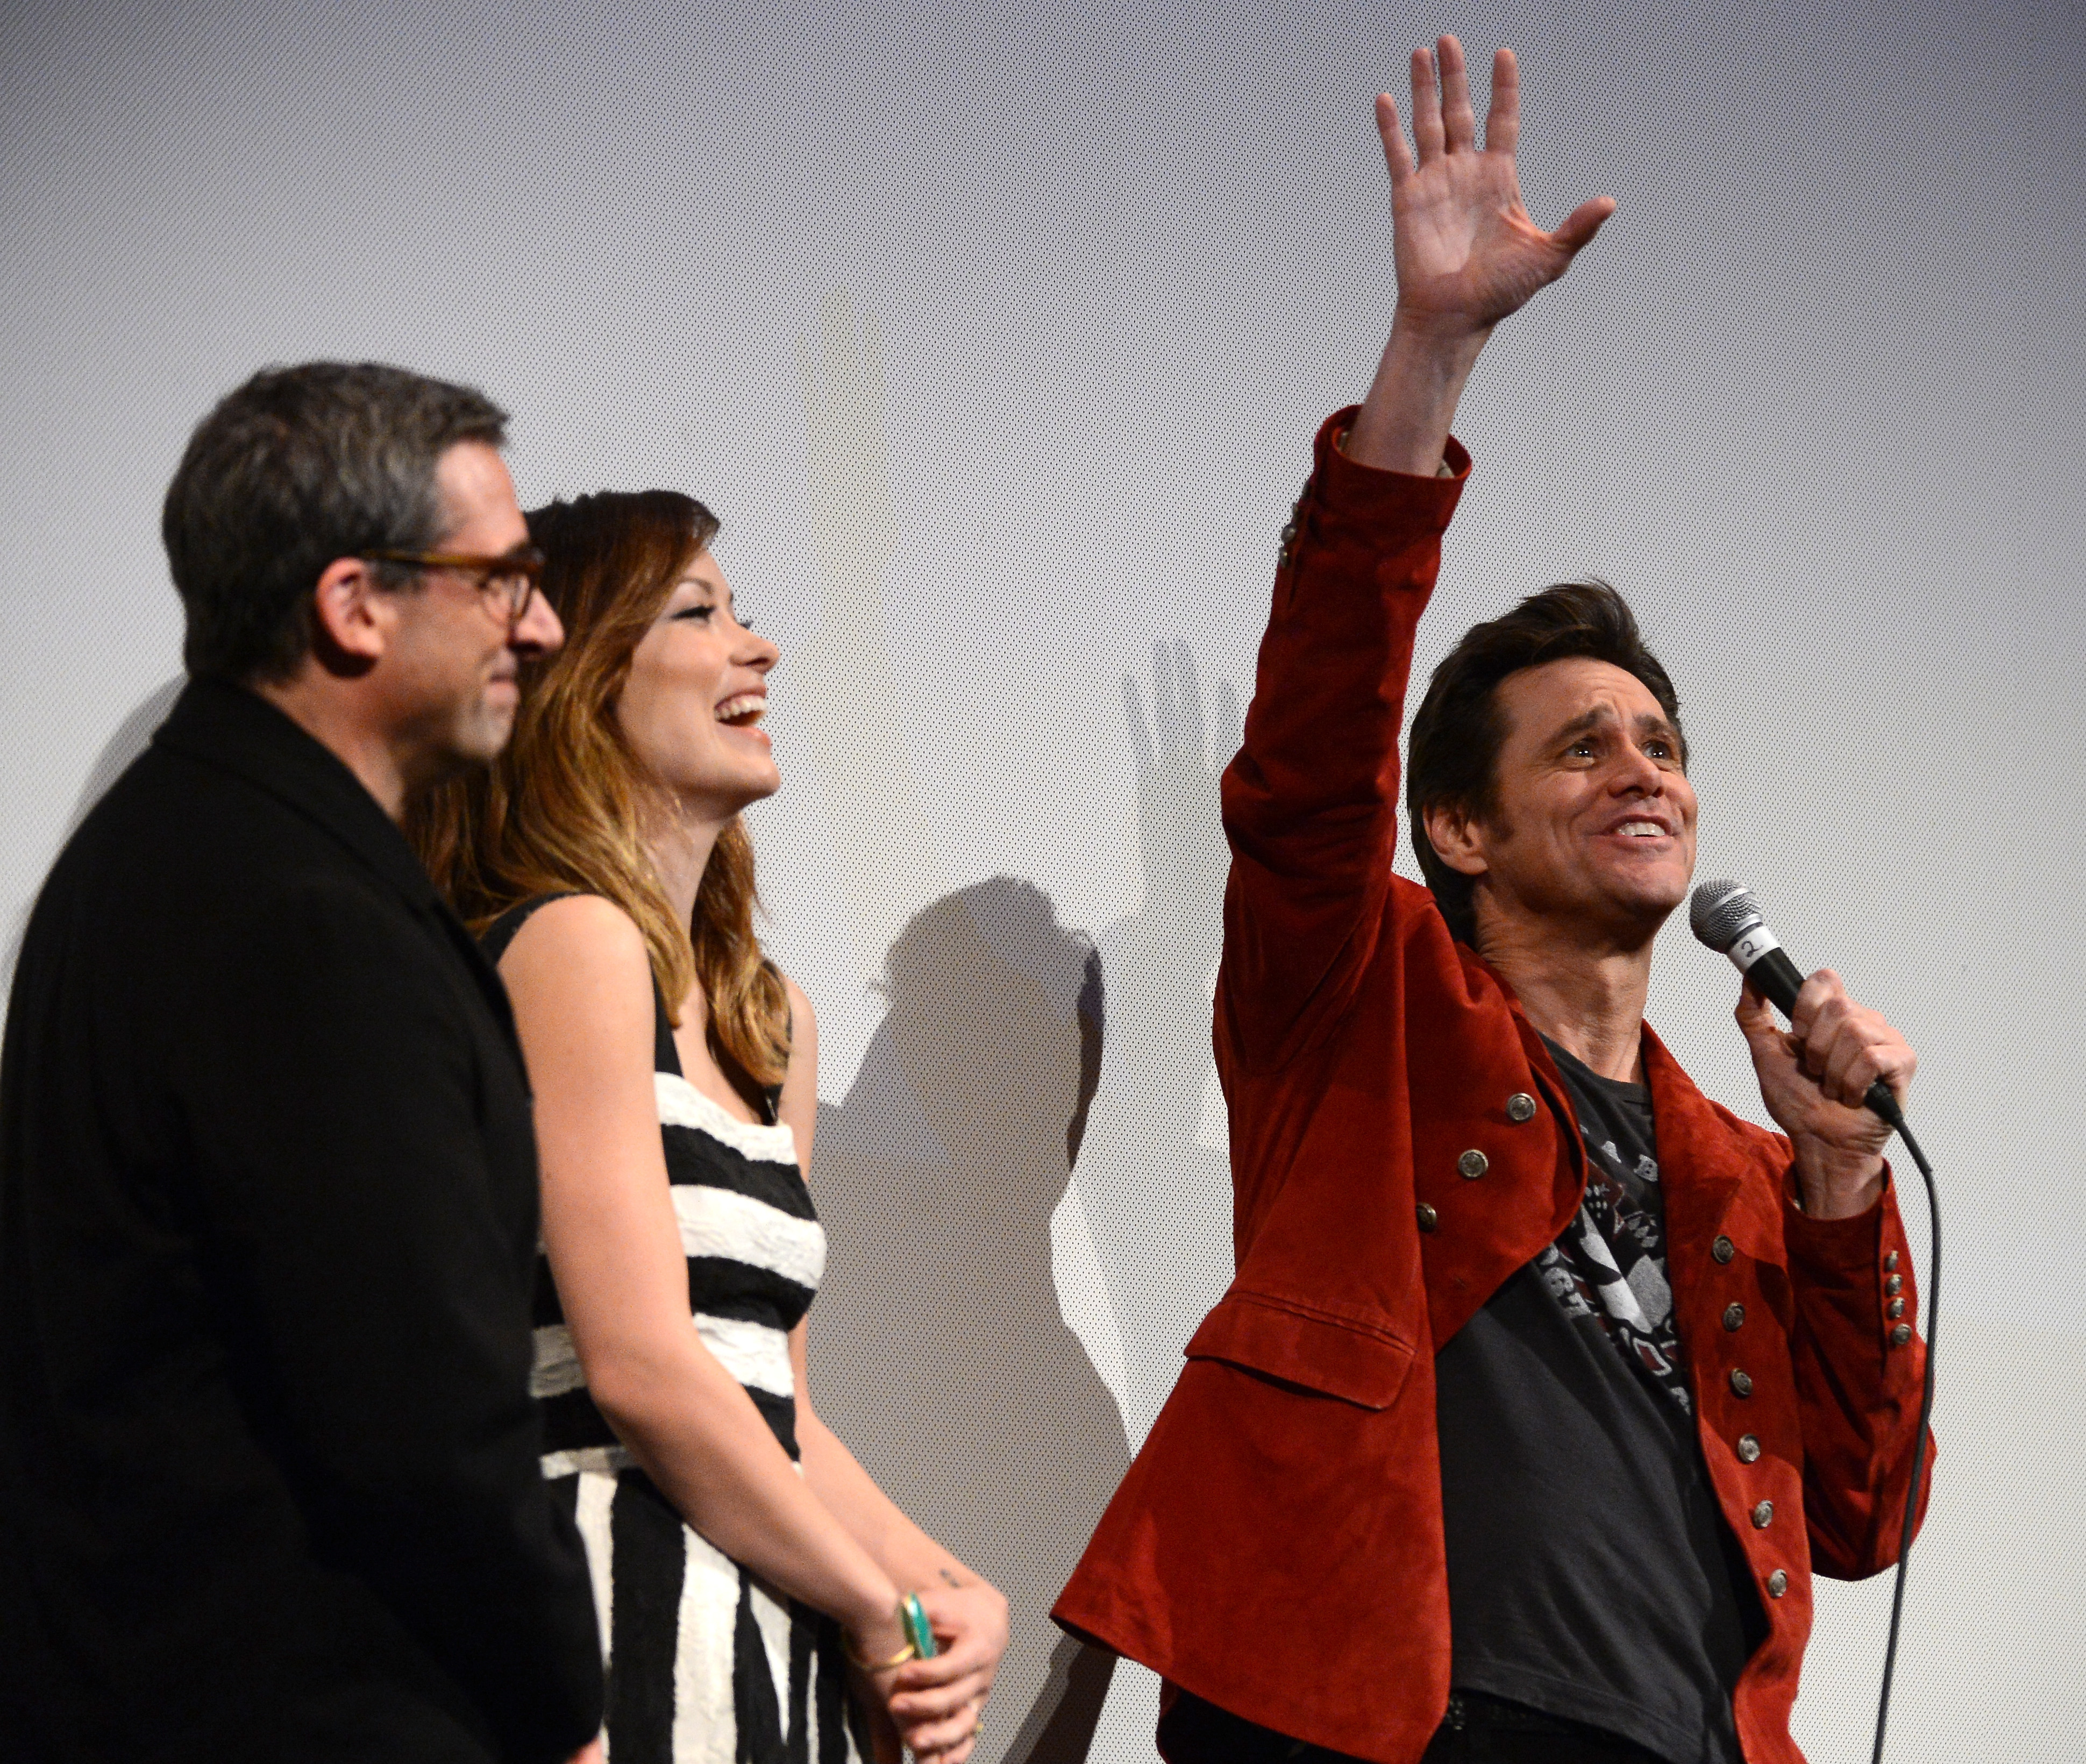 Jim Carrey took the mic next to Olivia Wilde and Steve Carell at the Q&A for The Incredible Burt Wonderstone.